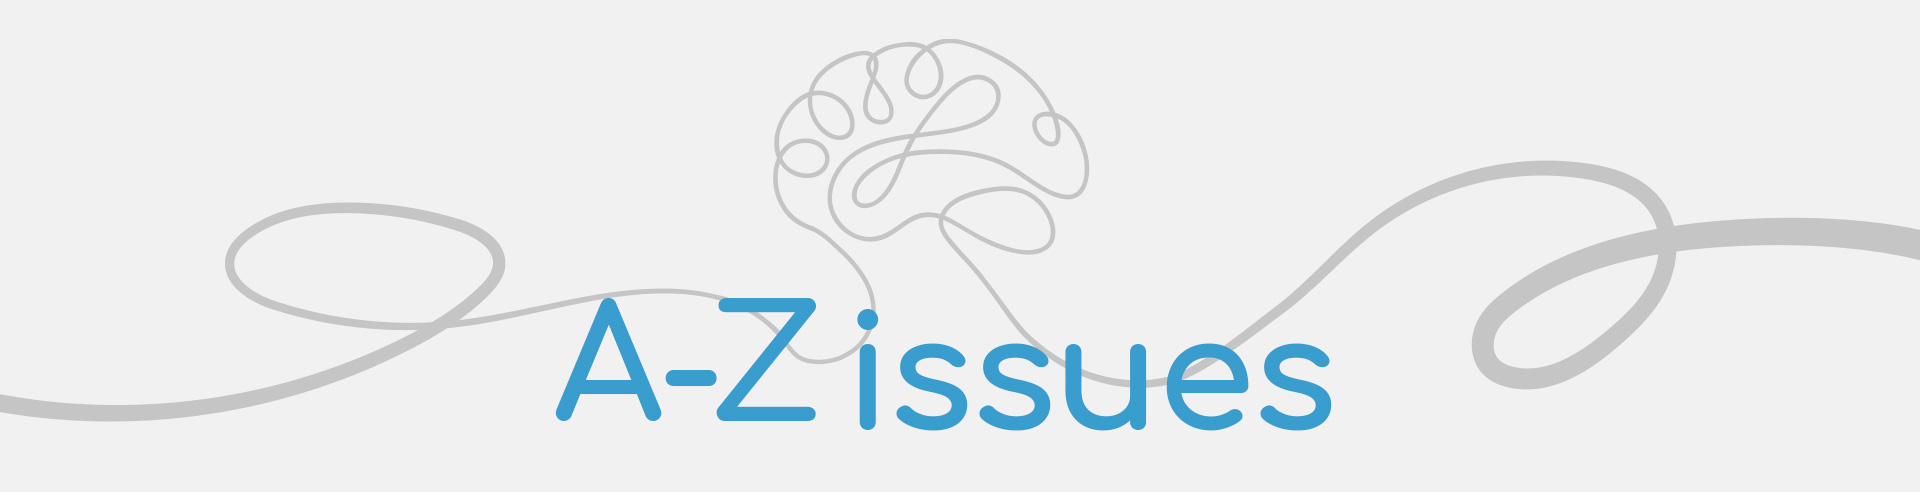 A-Z mental health issues